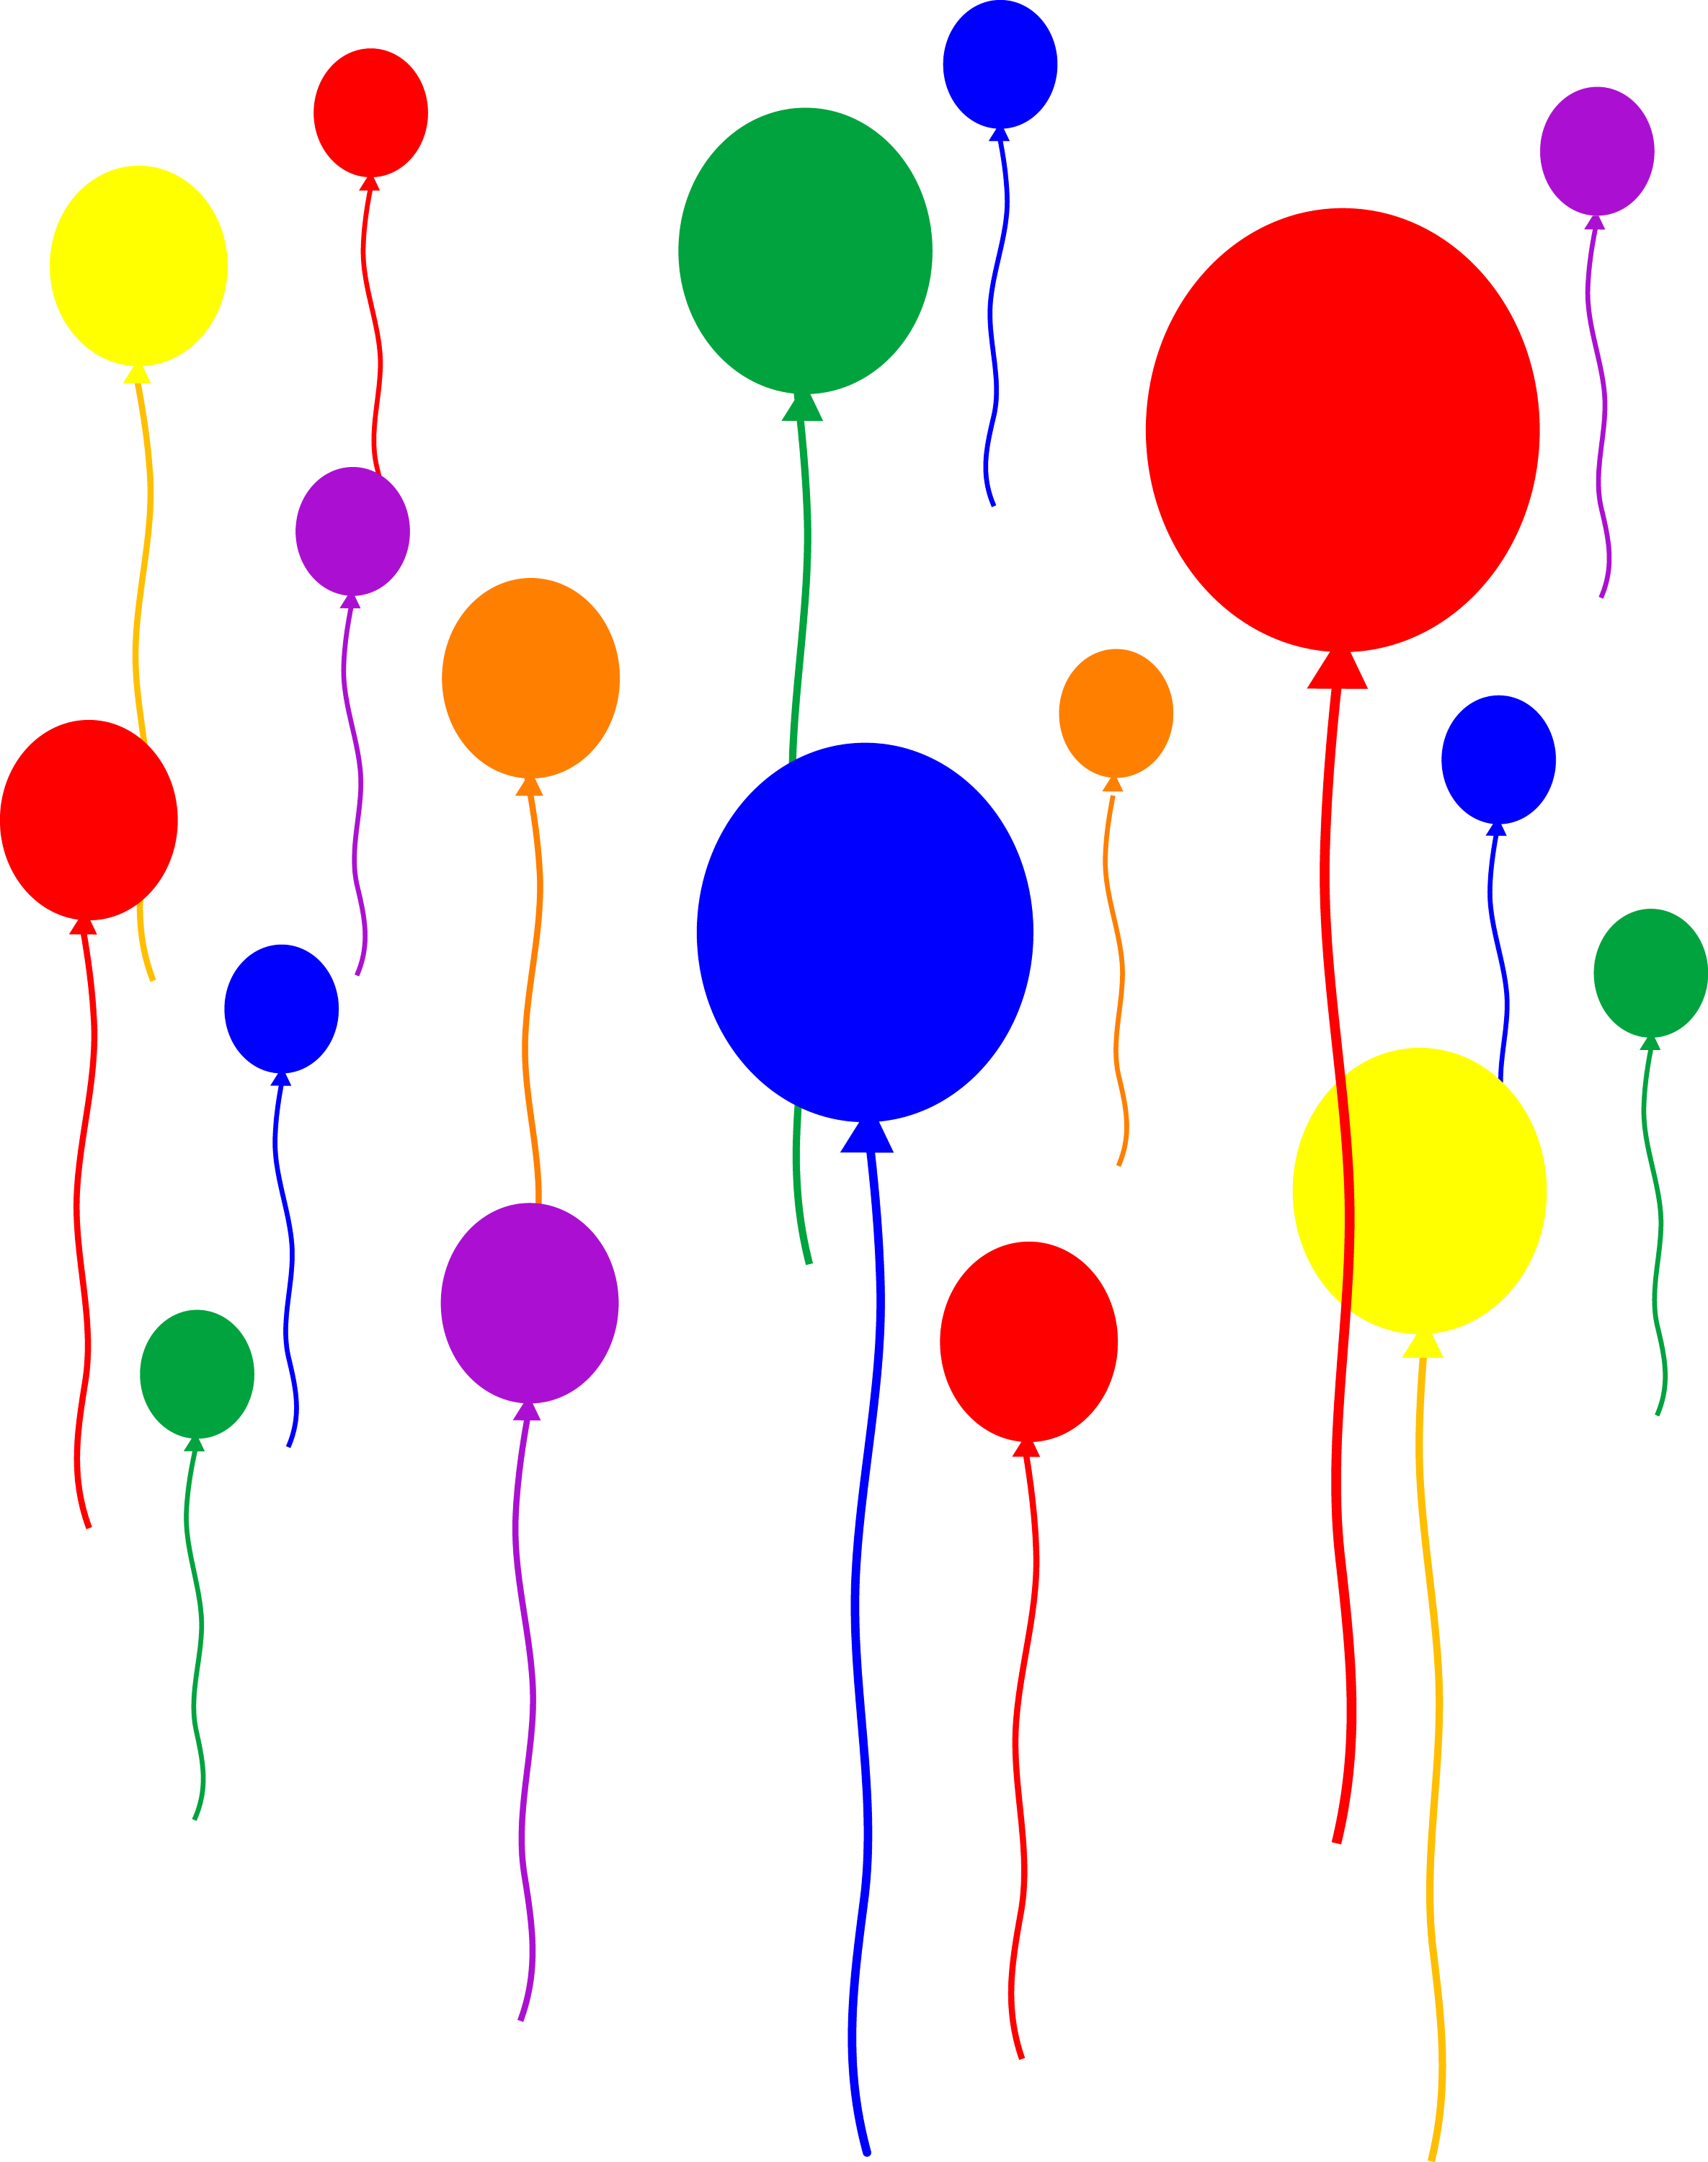 Party Balloons on Transparent Background - Free Clip Art